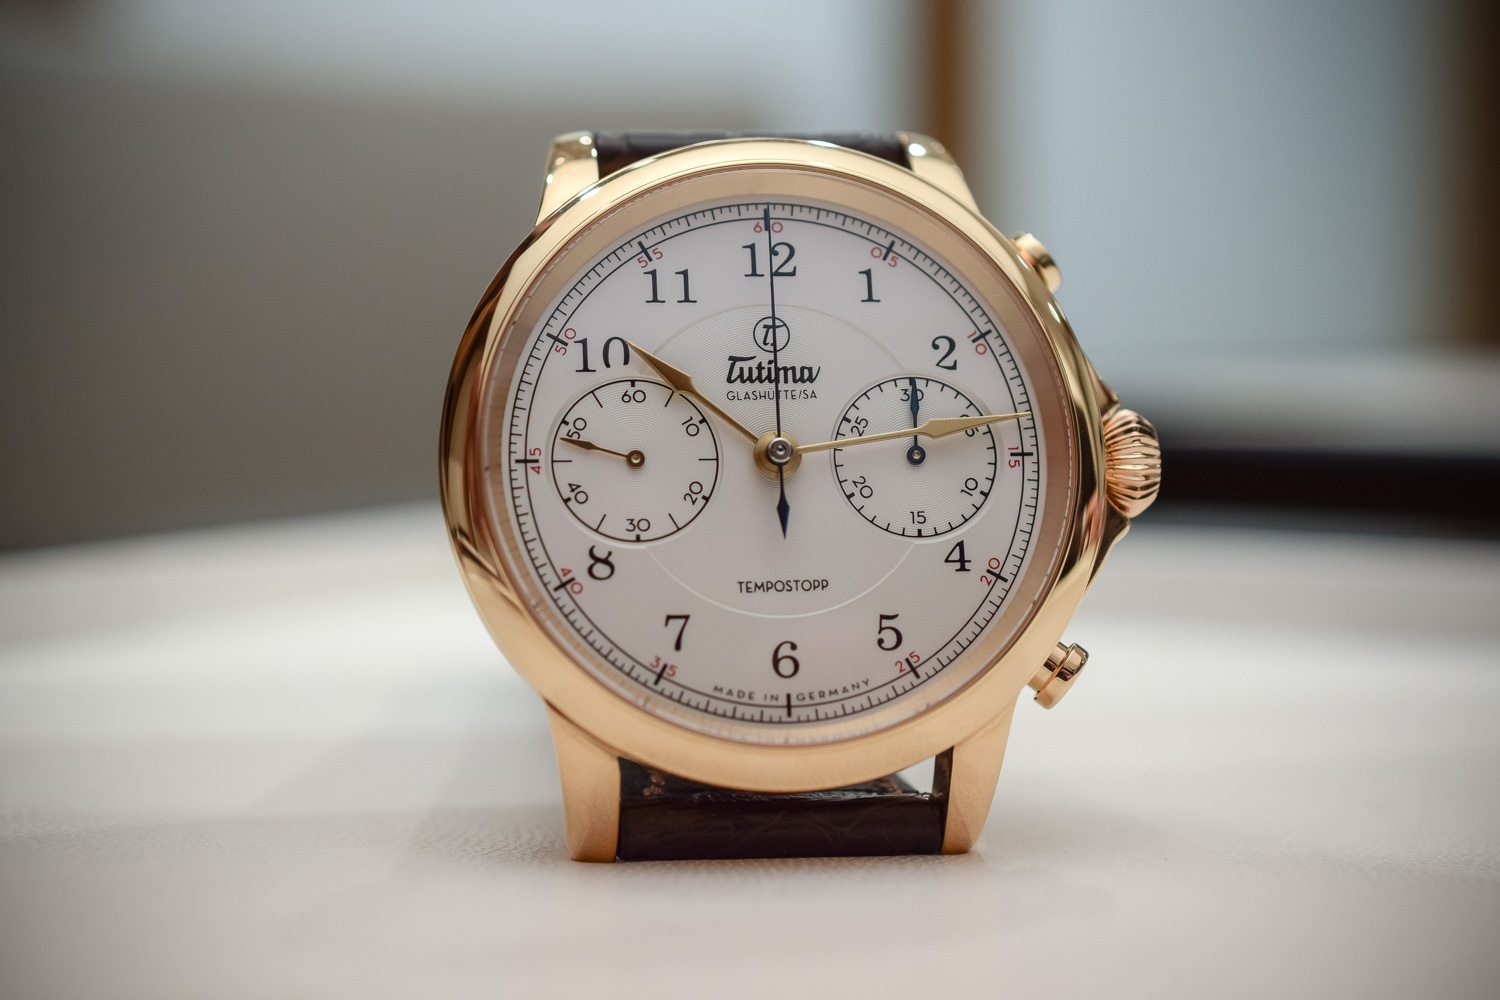 Tutima Tempostopp Chronograph In-house - Baselworld 2017